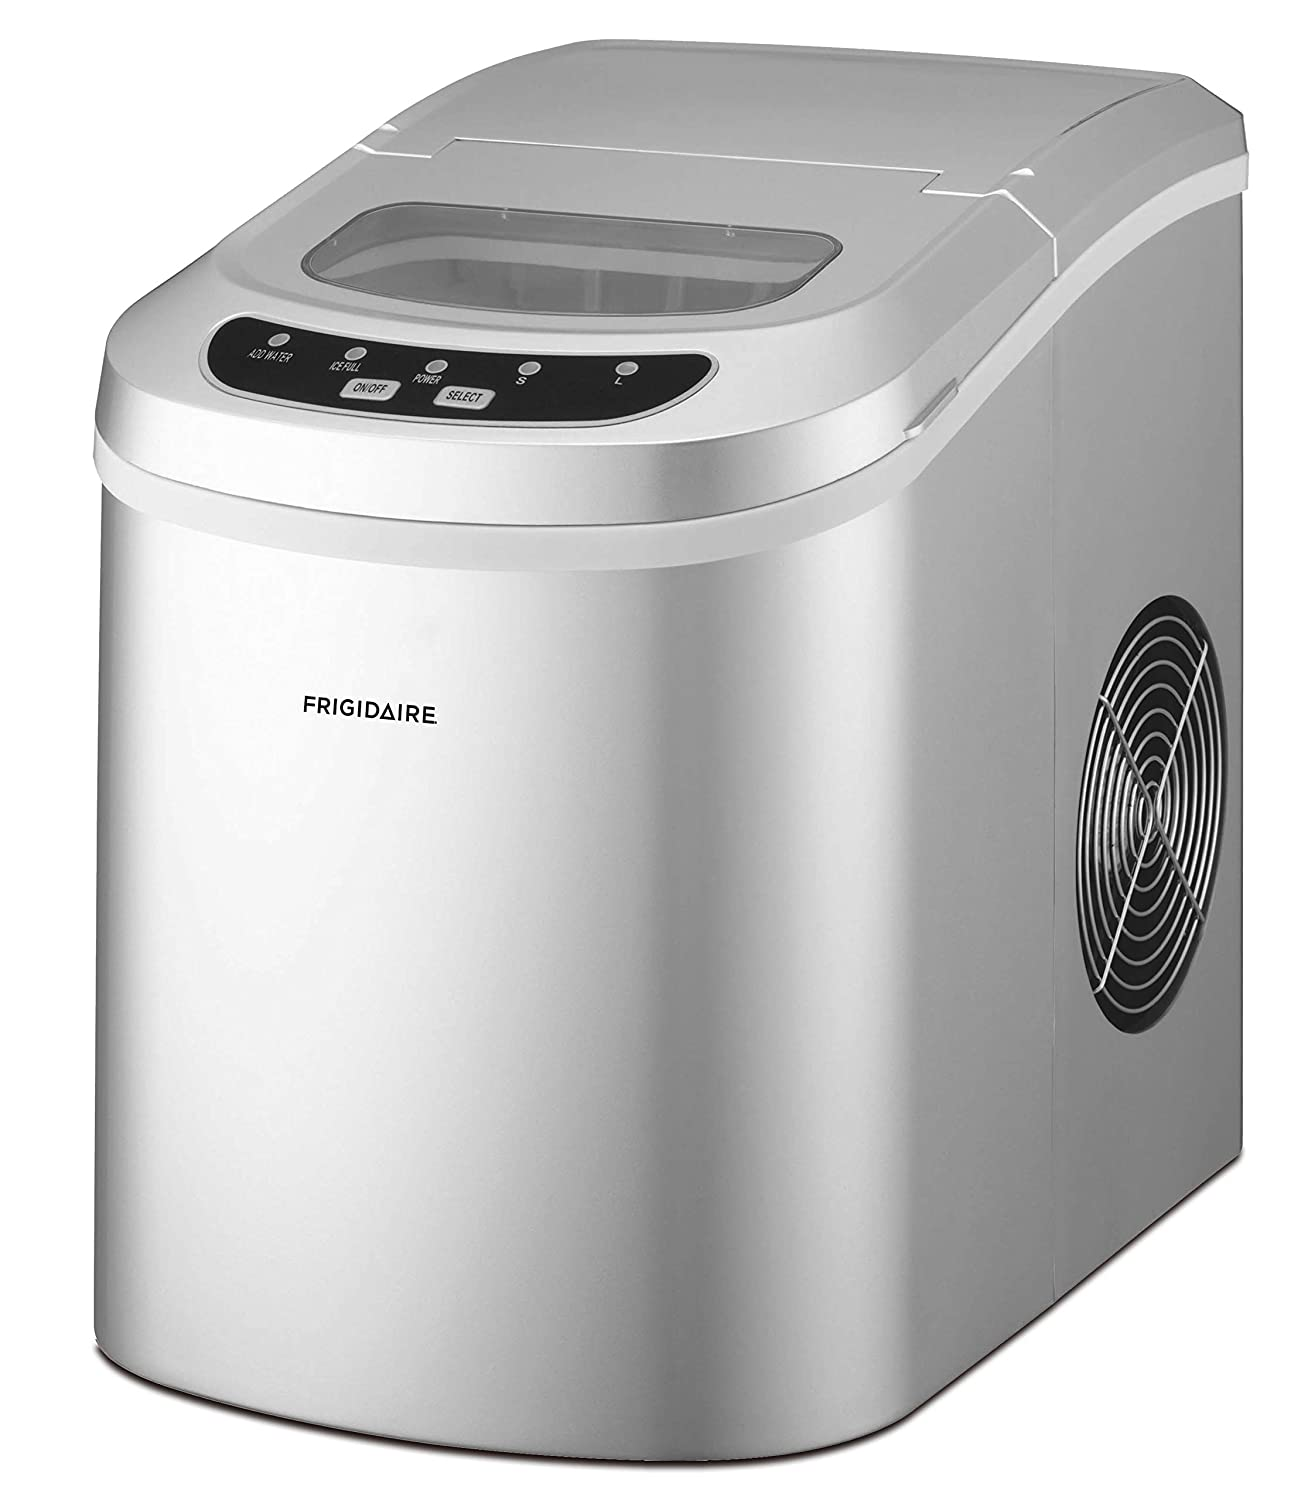 Frigidaire 26 Lbs Counter Top Ice Maker, Silver Curtis